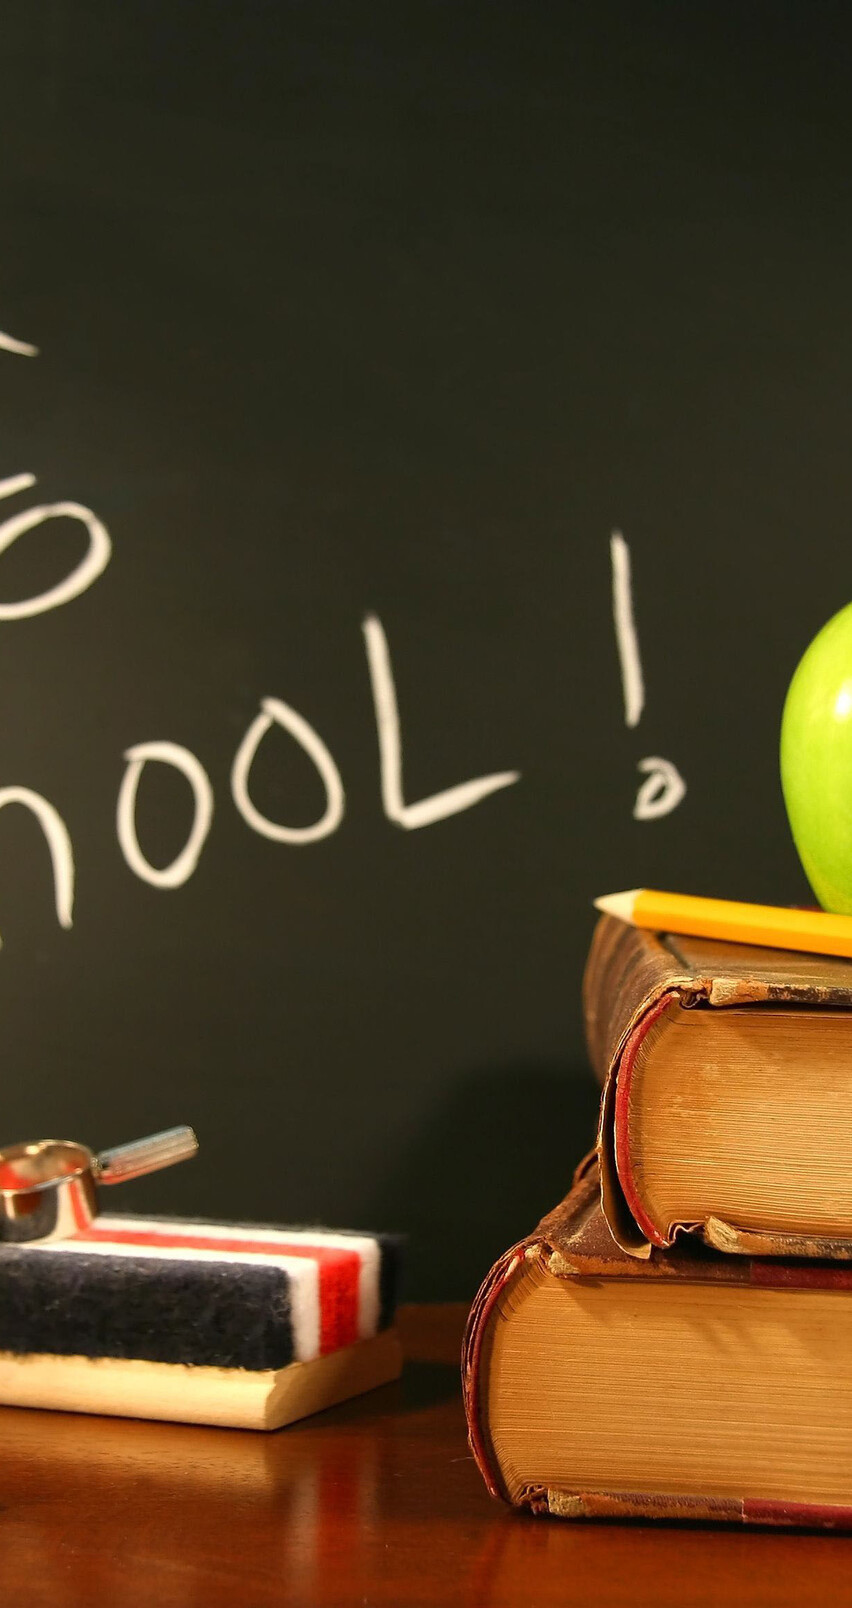 Back to school for a new year   HD wallpaper 852x1608